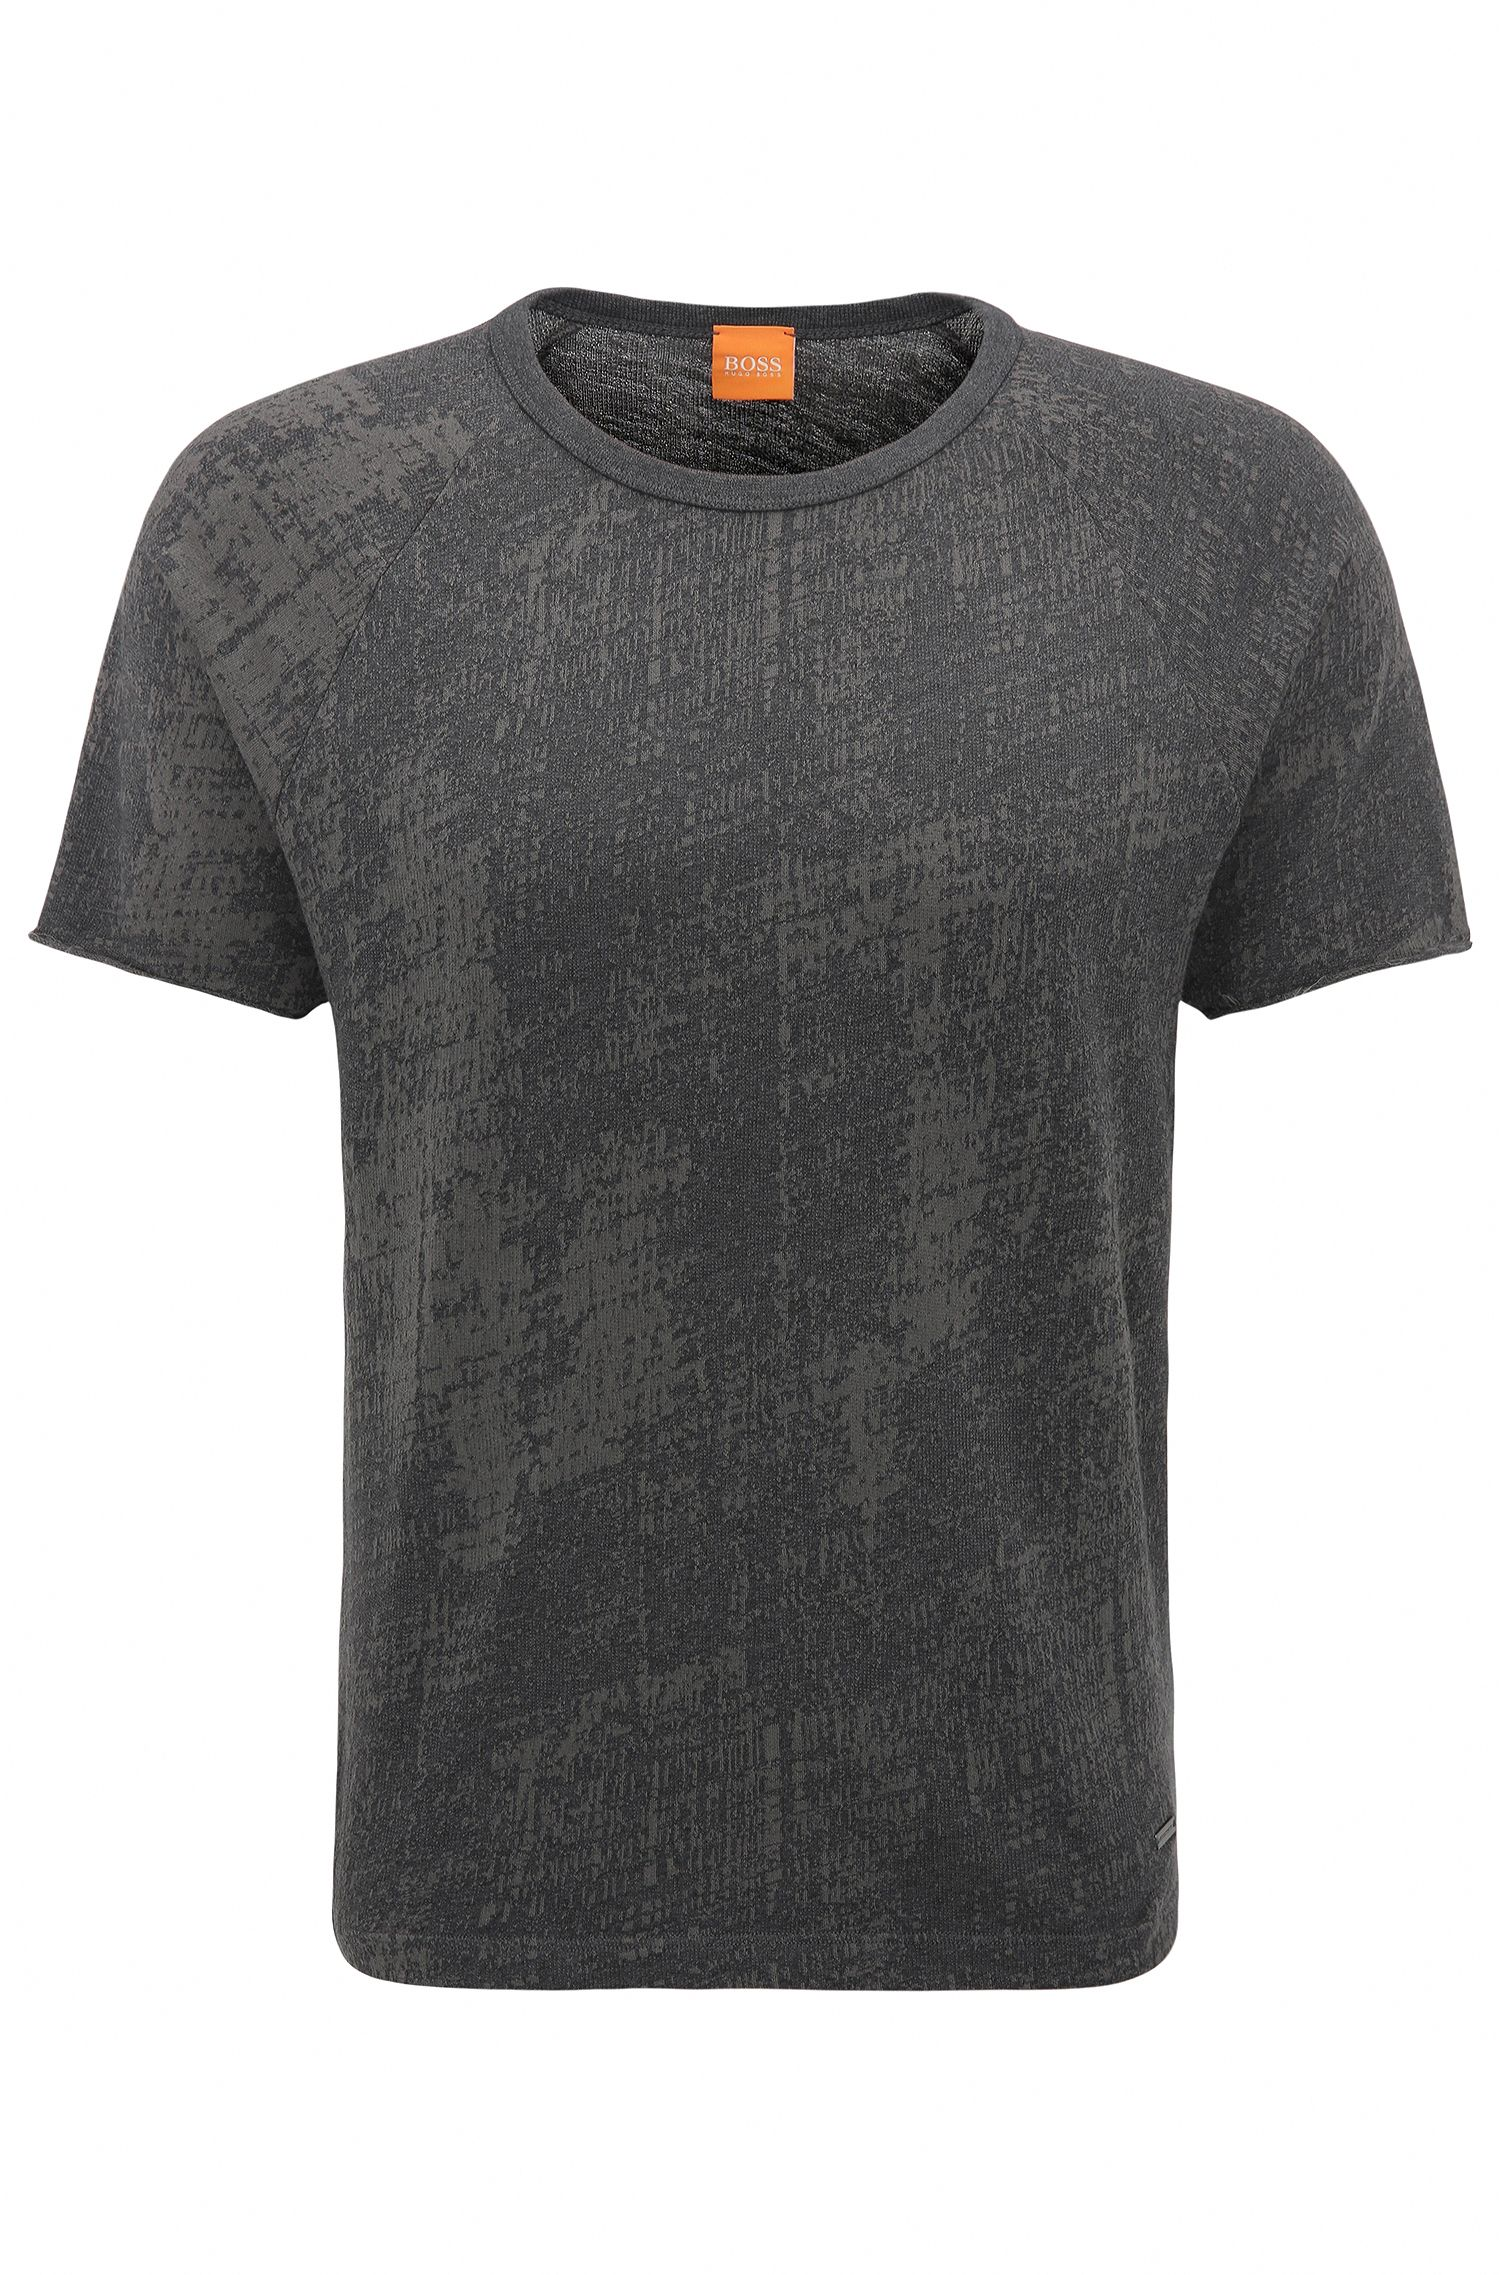 T-shirt relaxed fit in cotone jacquard